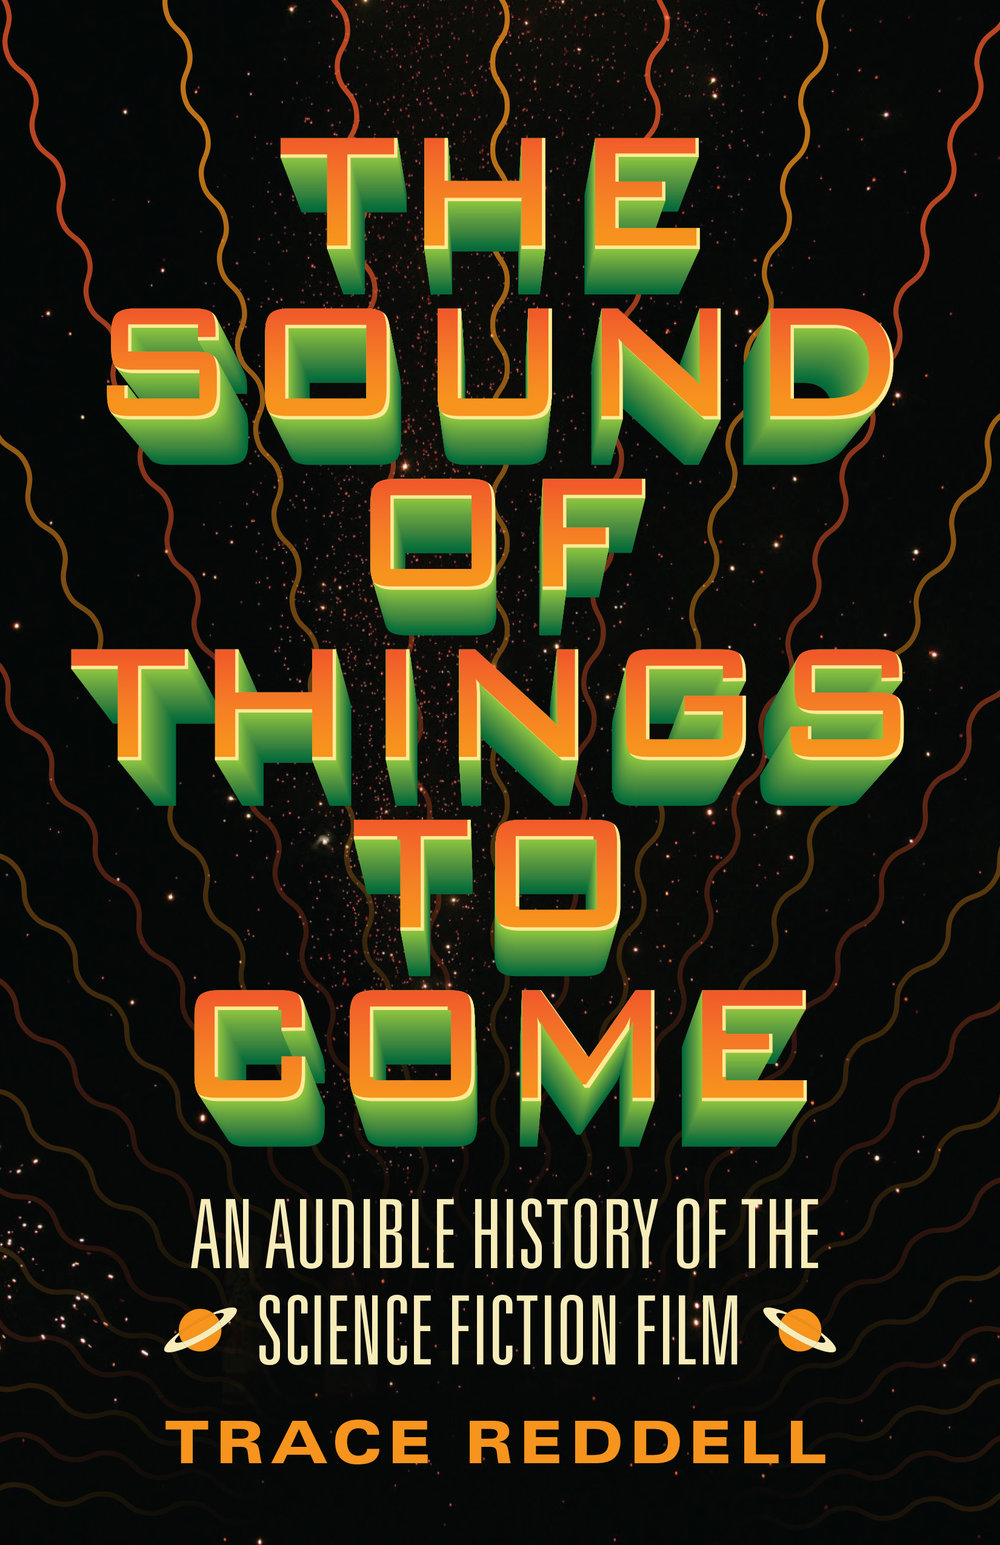 The Sound of Things to Come: An Audible History of the Science Fiction Film can be purchased online or at your favorite bookstore. - Available October 16, 2018.